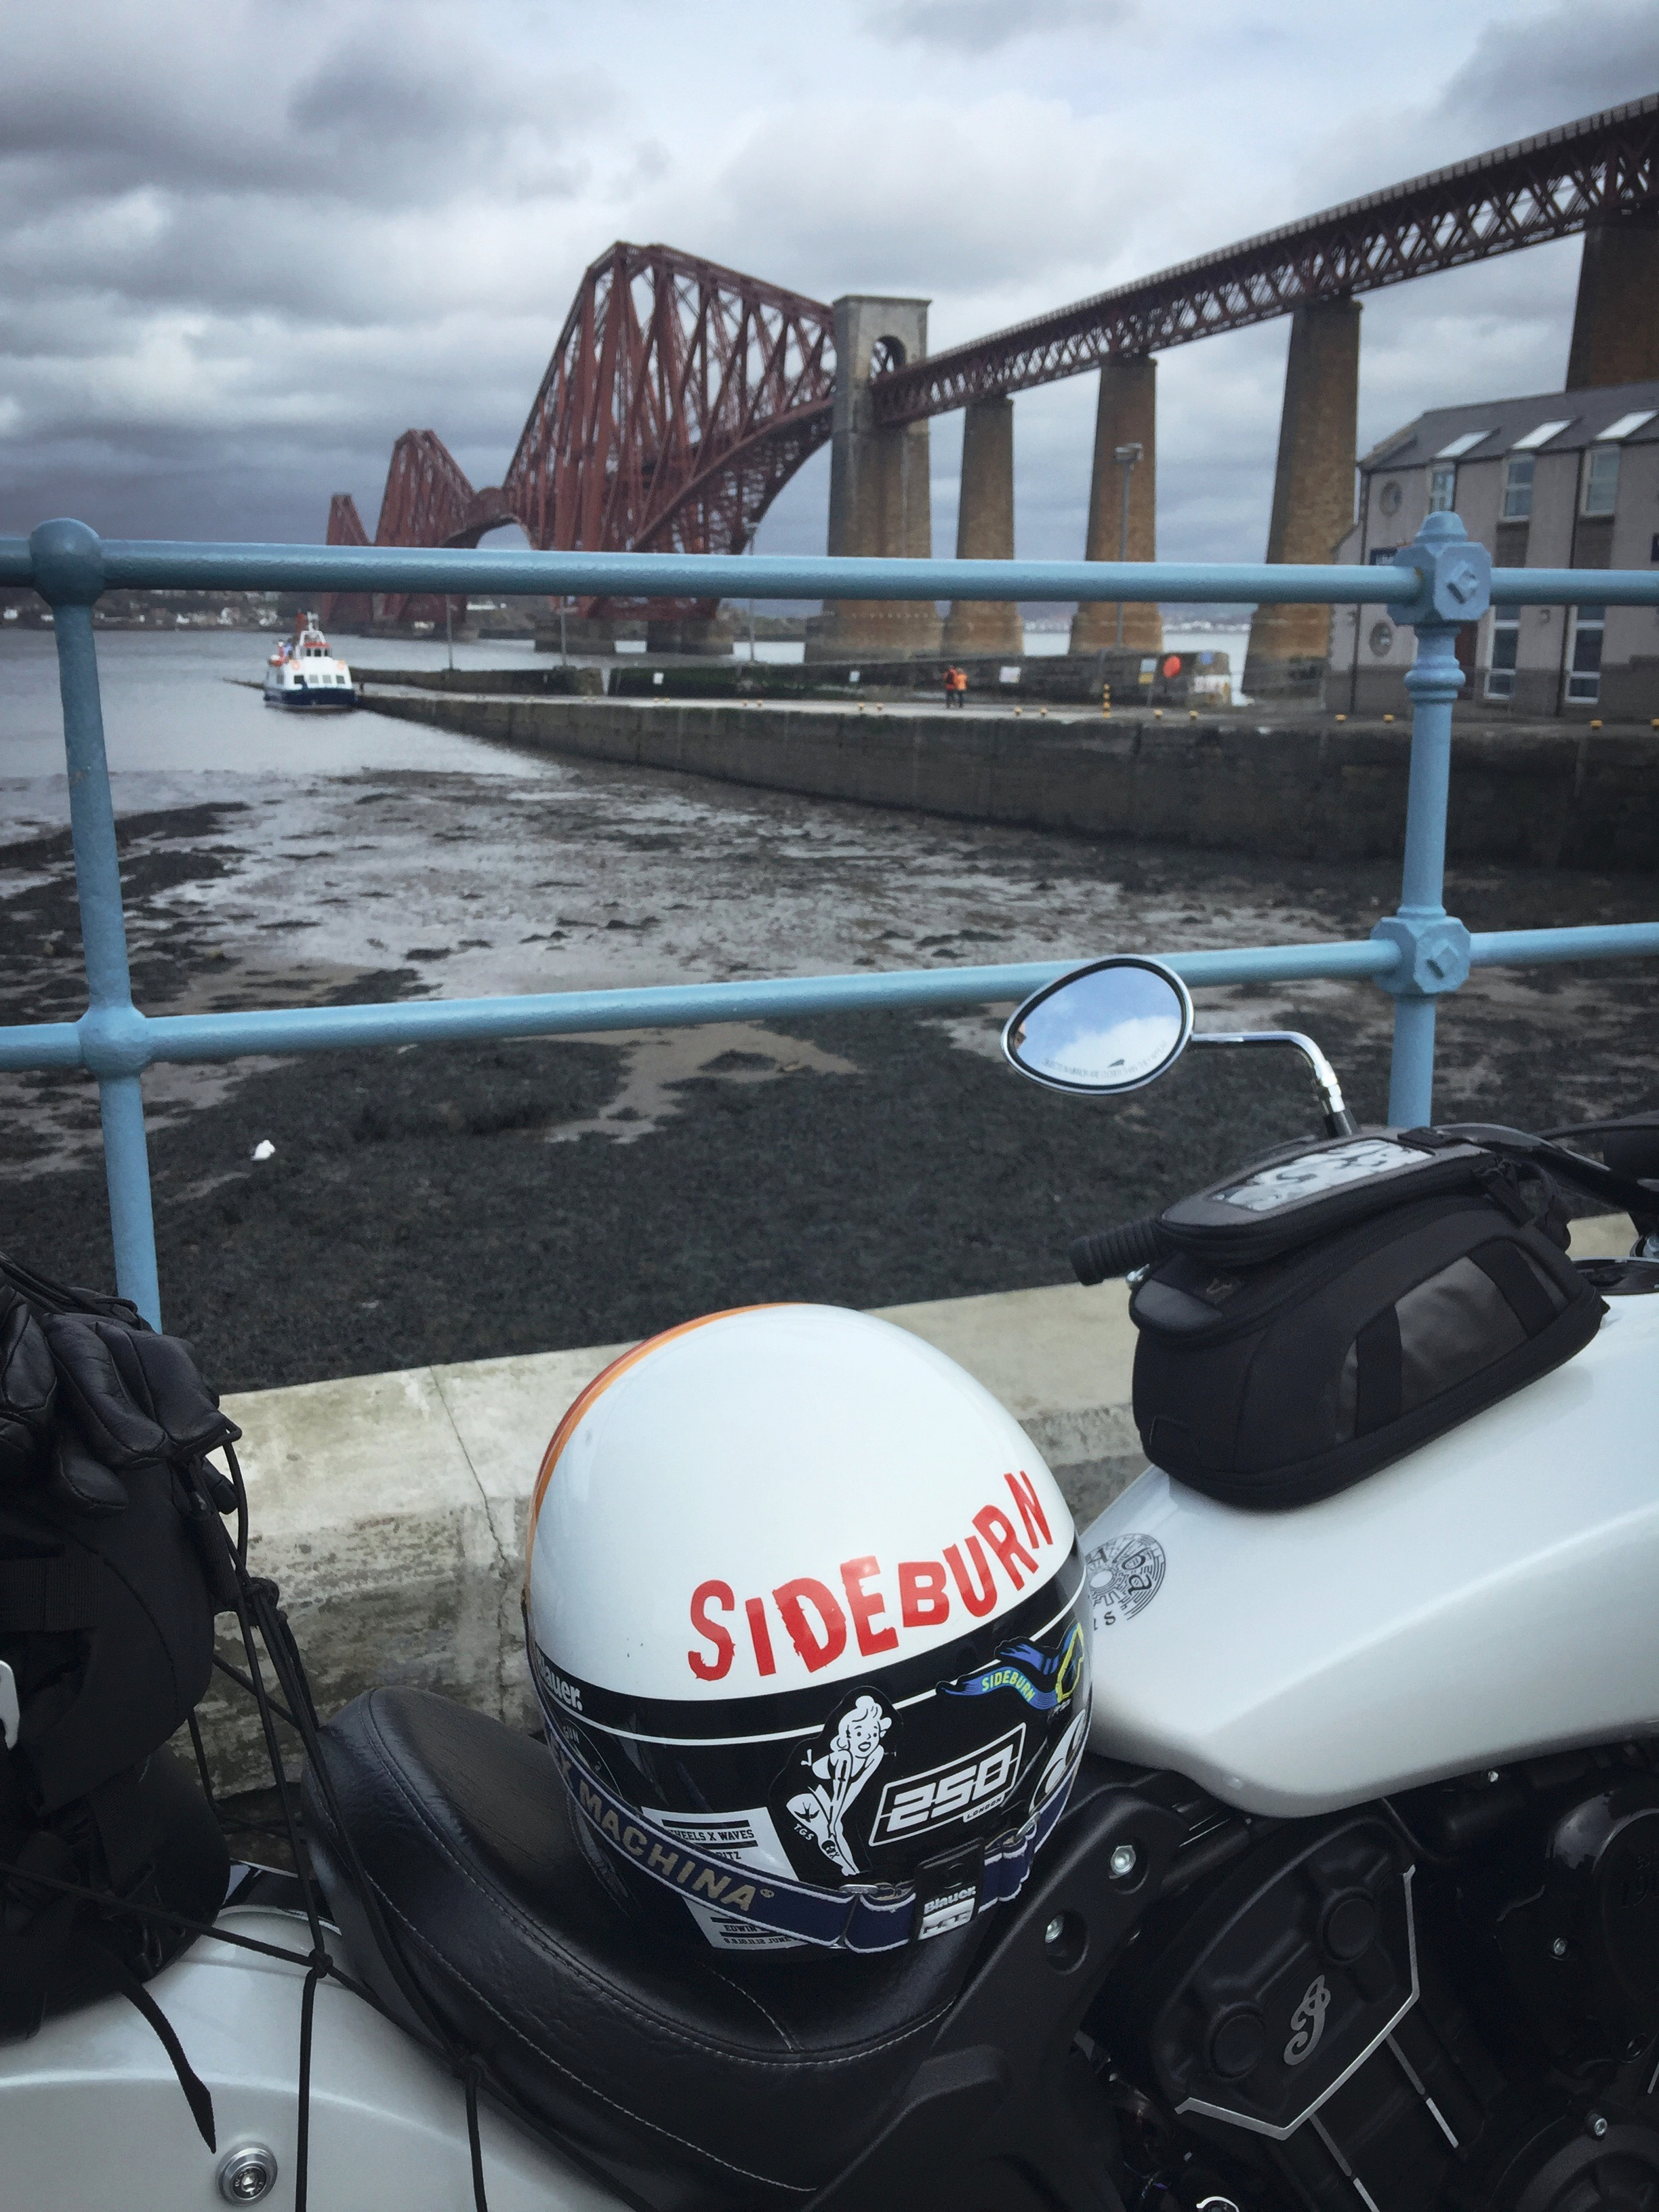 Not a bad view of the Forth Road Bridge